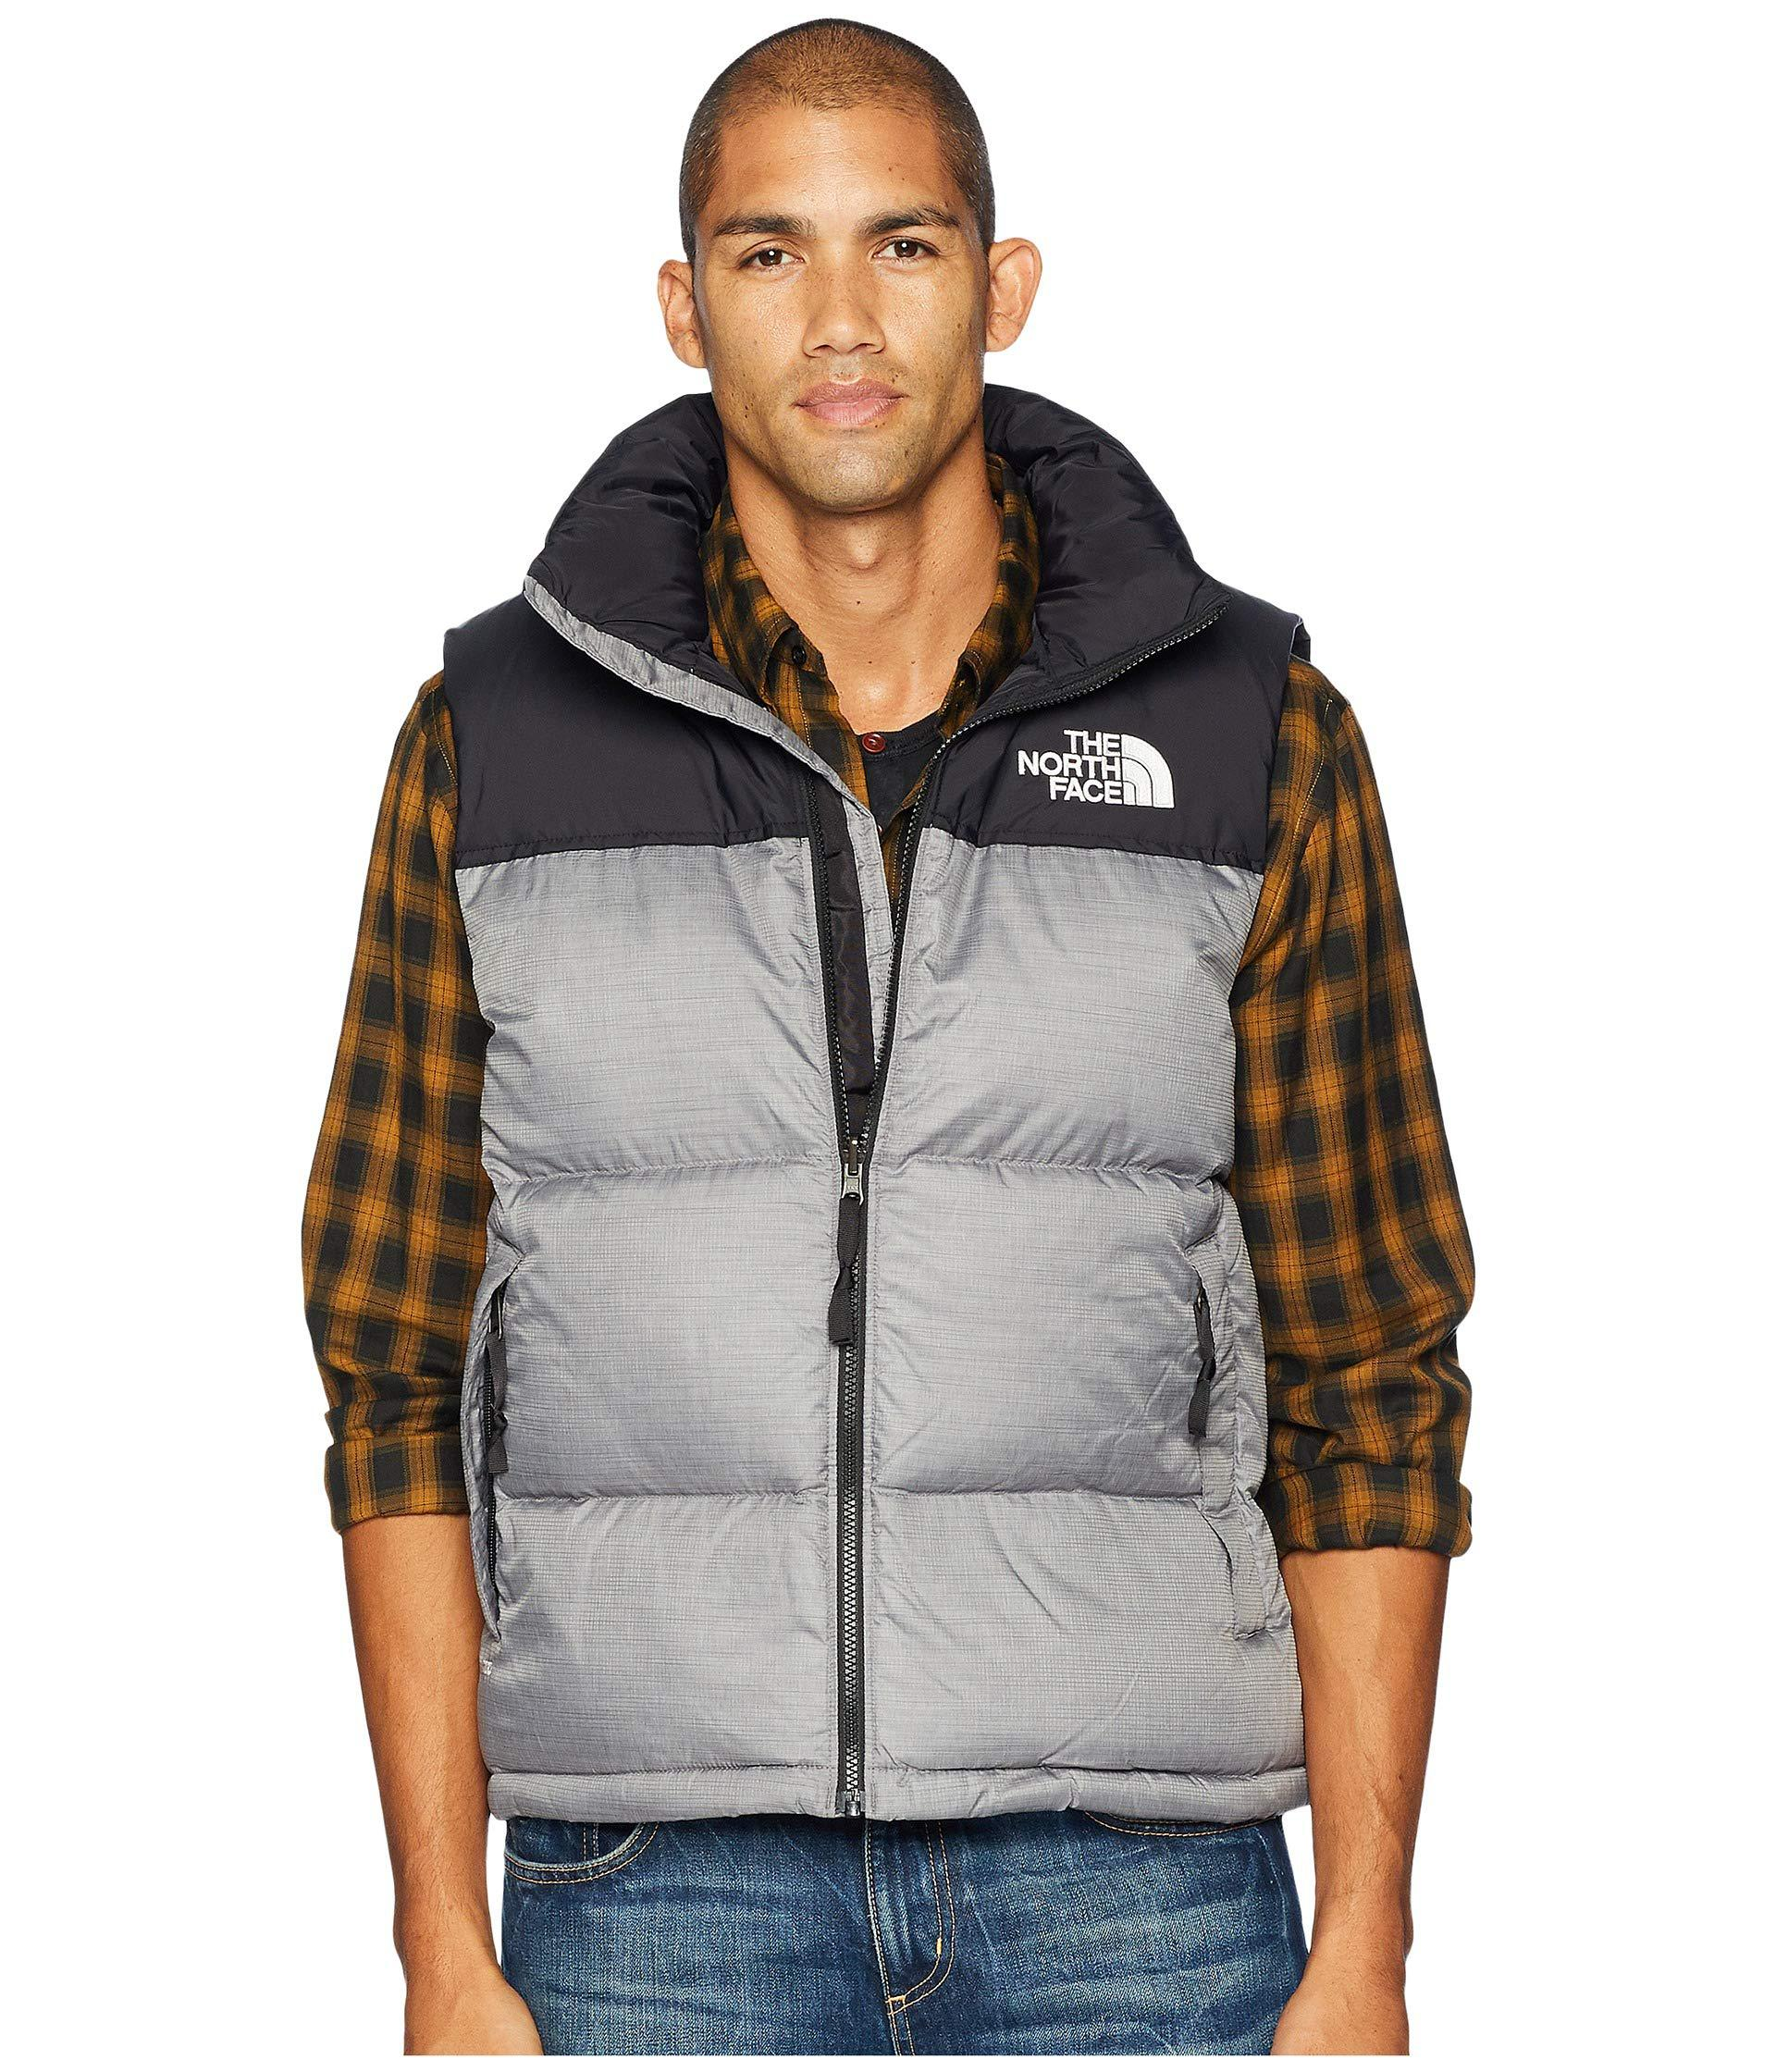 93f5f3bab5 The North Face 1996 Retro Nuptse Vest (tnf Red) Men's Vest in Gray ...